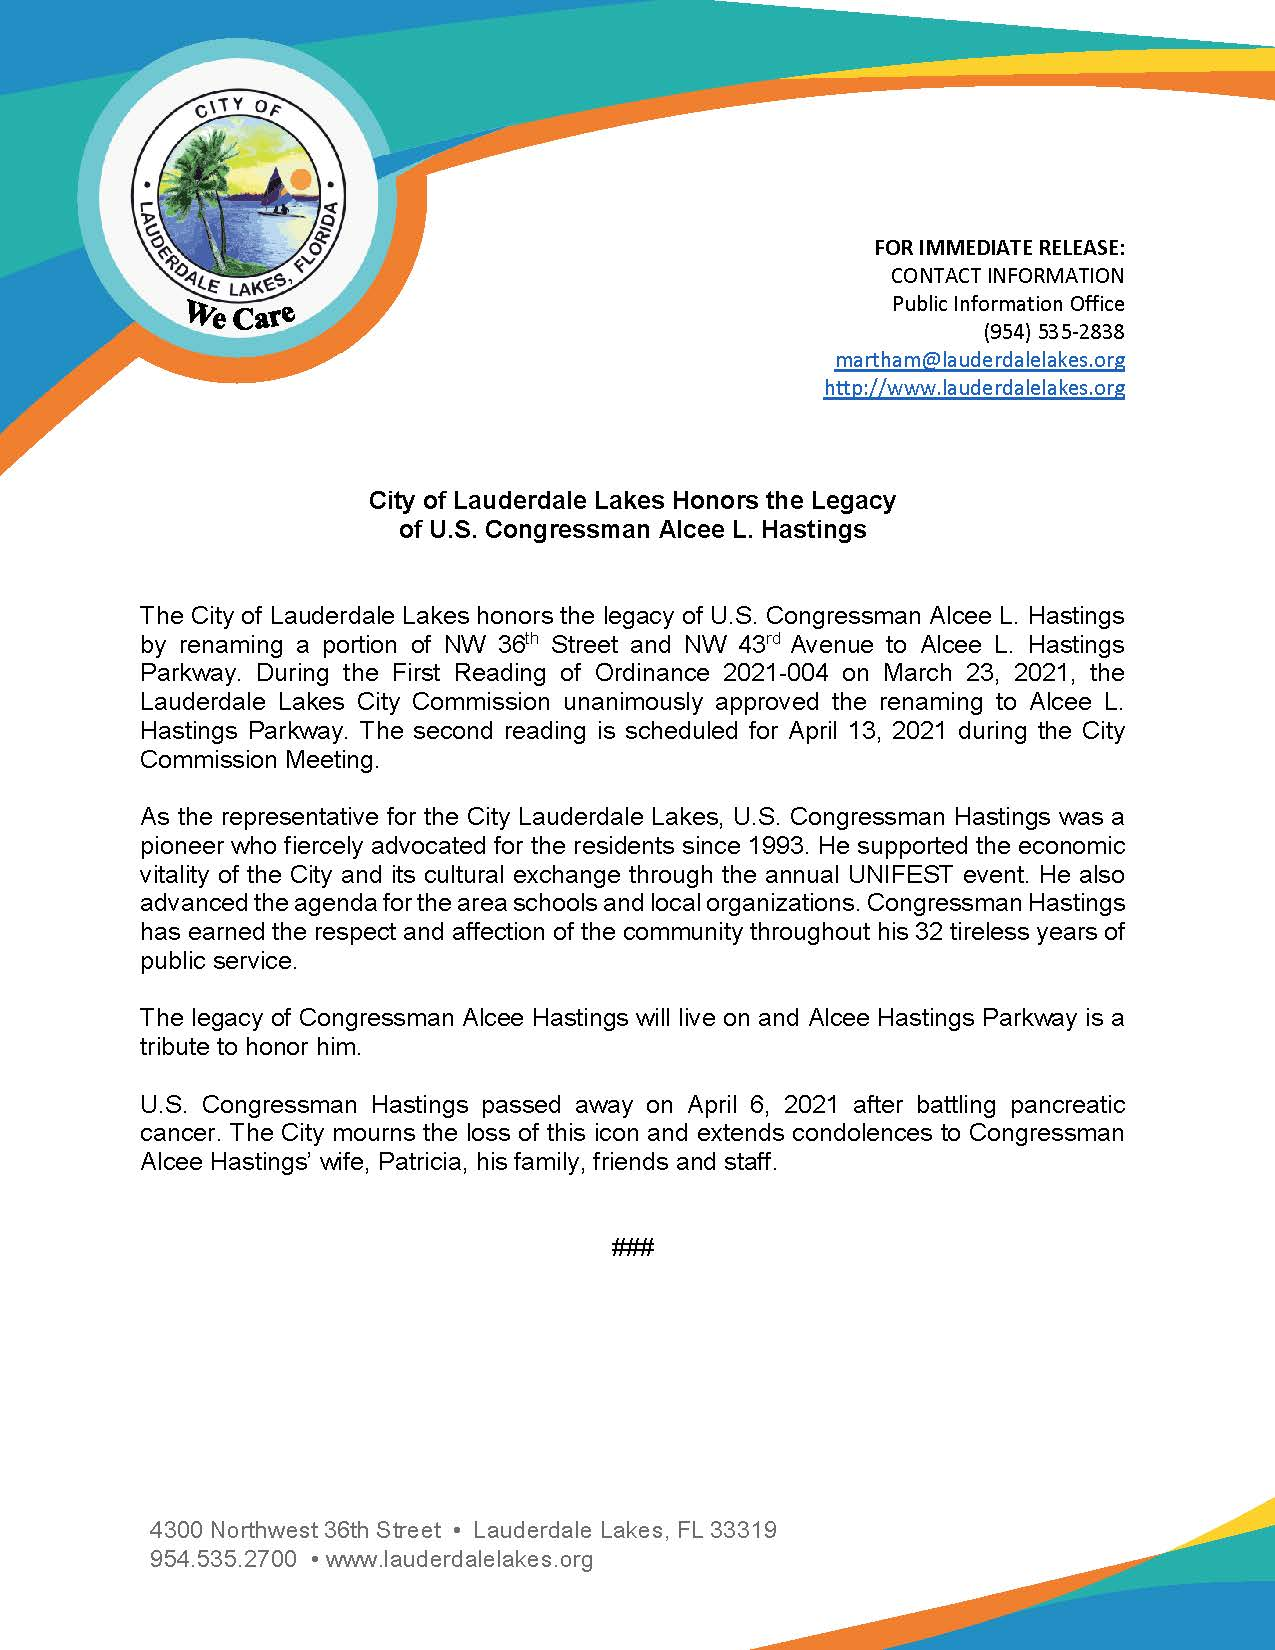 Press Release - Hastings Legacy